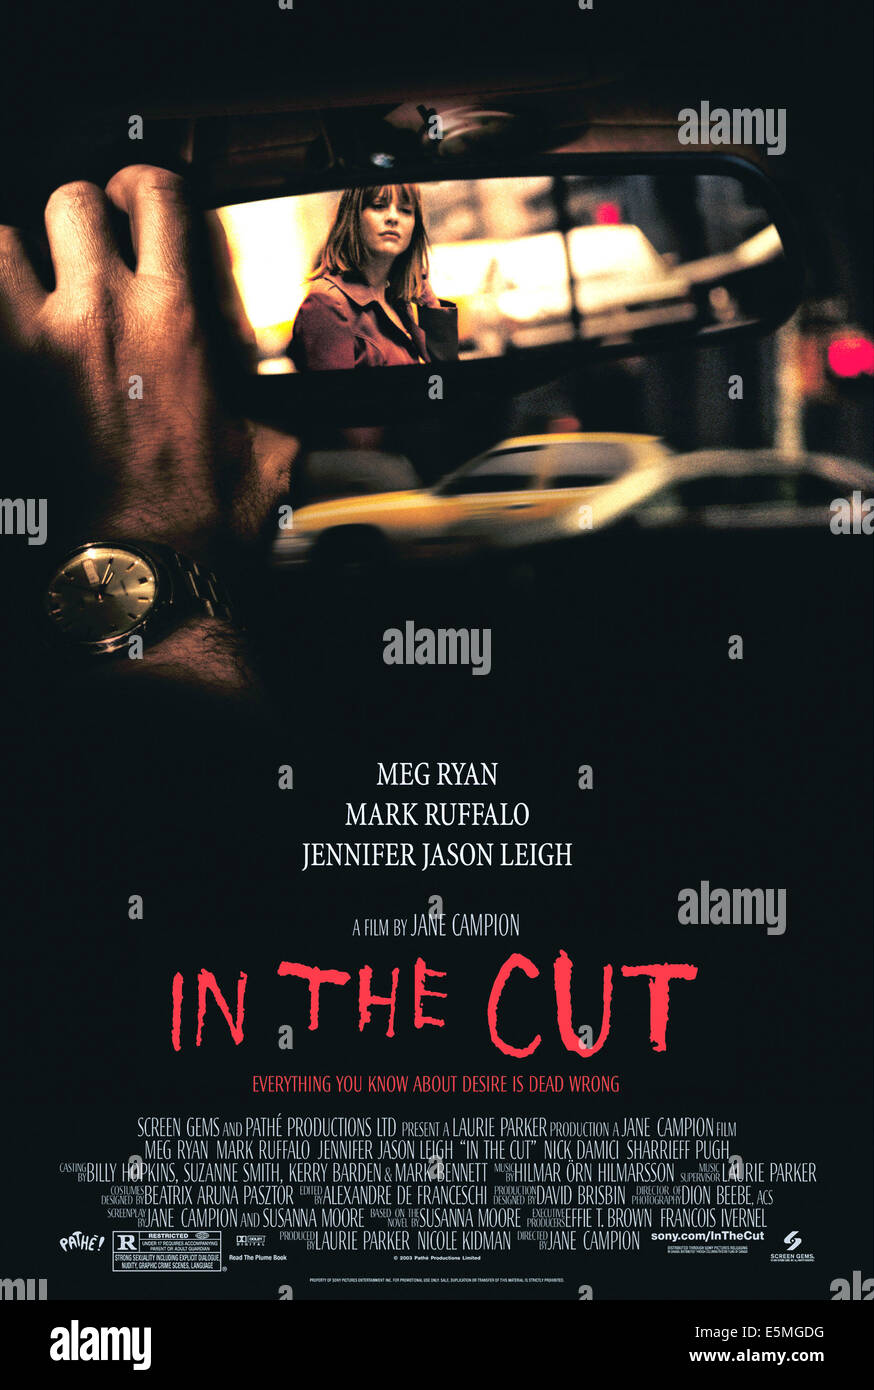 IN THE CUT, 2003, (c) Screen Gems/courtesy Everett Collection - Stock Image